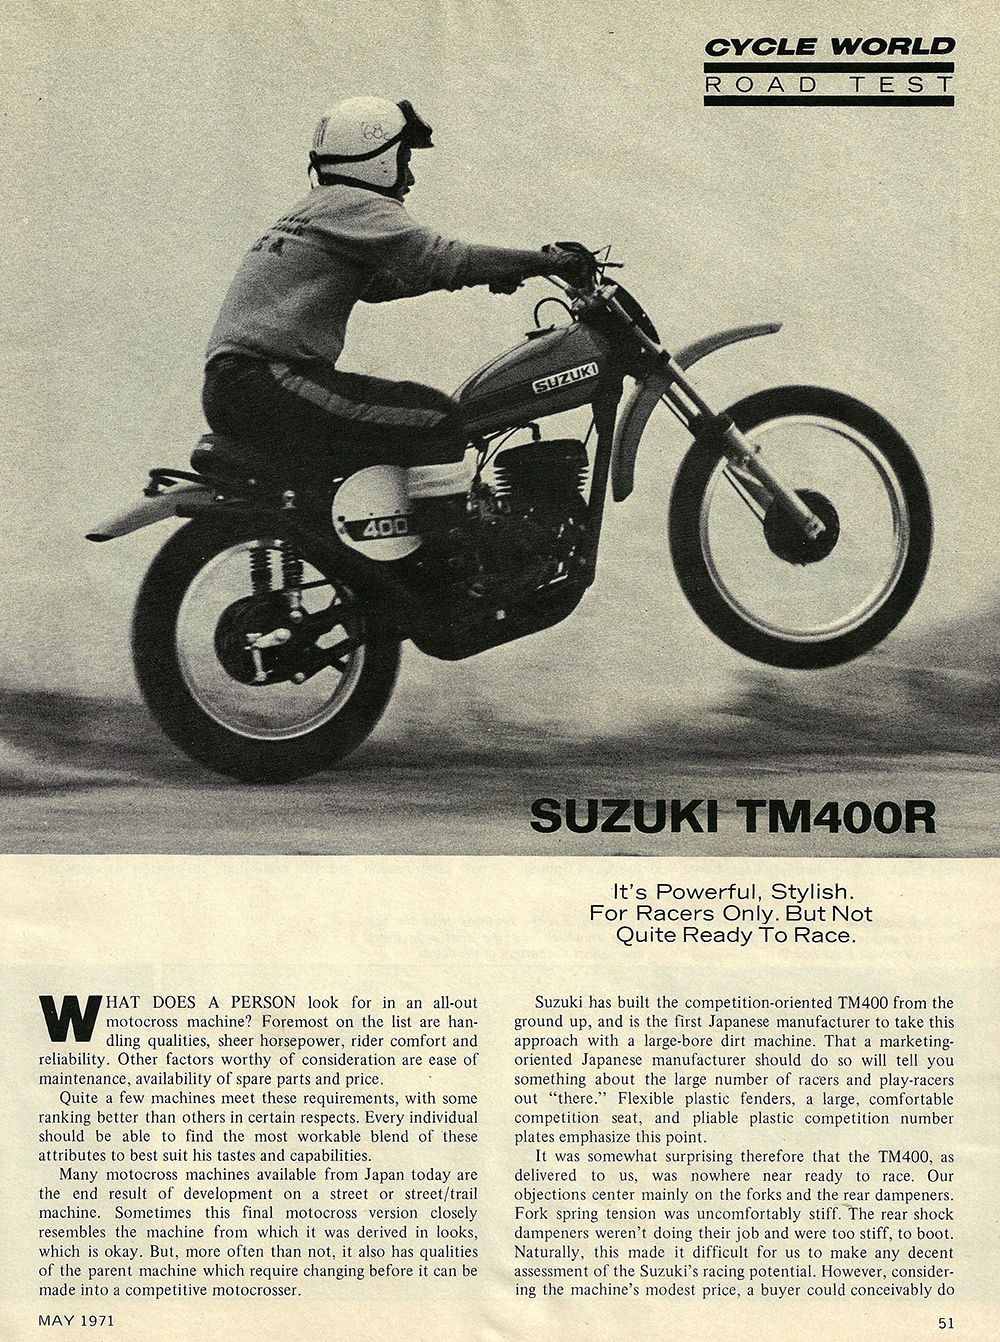 1971 Suzuki TM400R road test 01.jpg